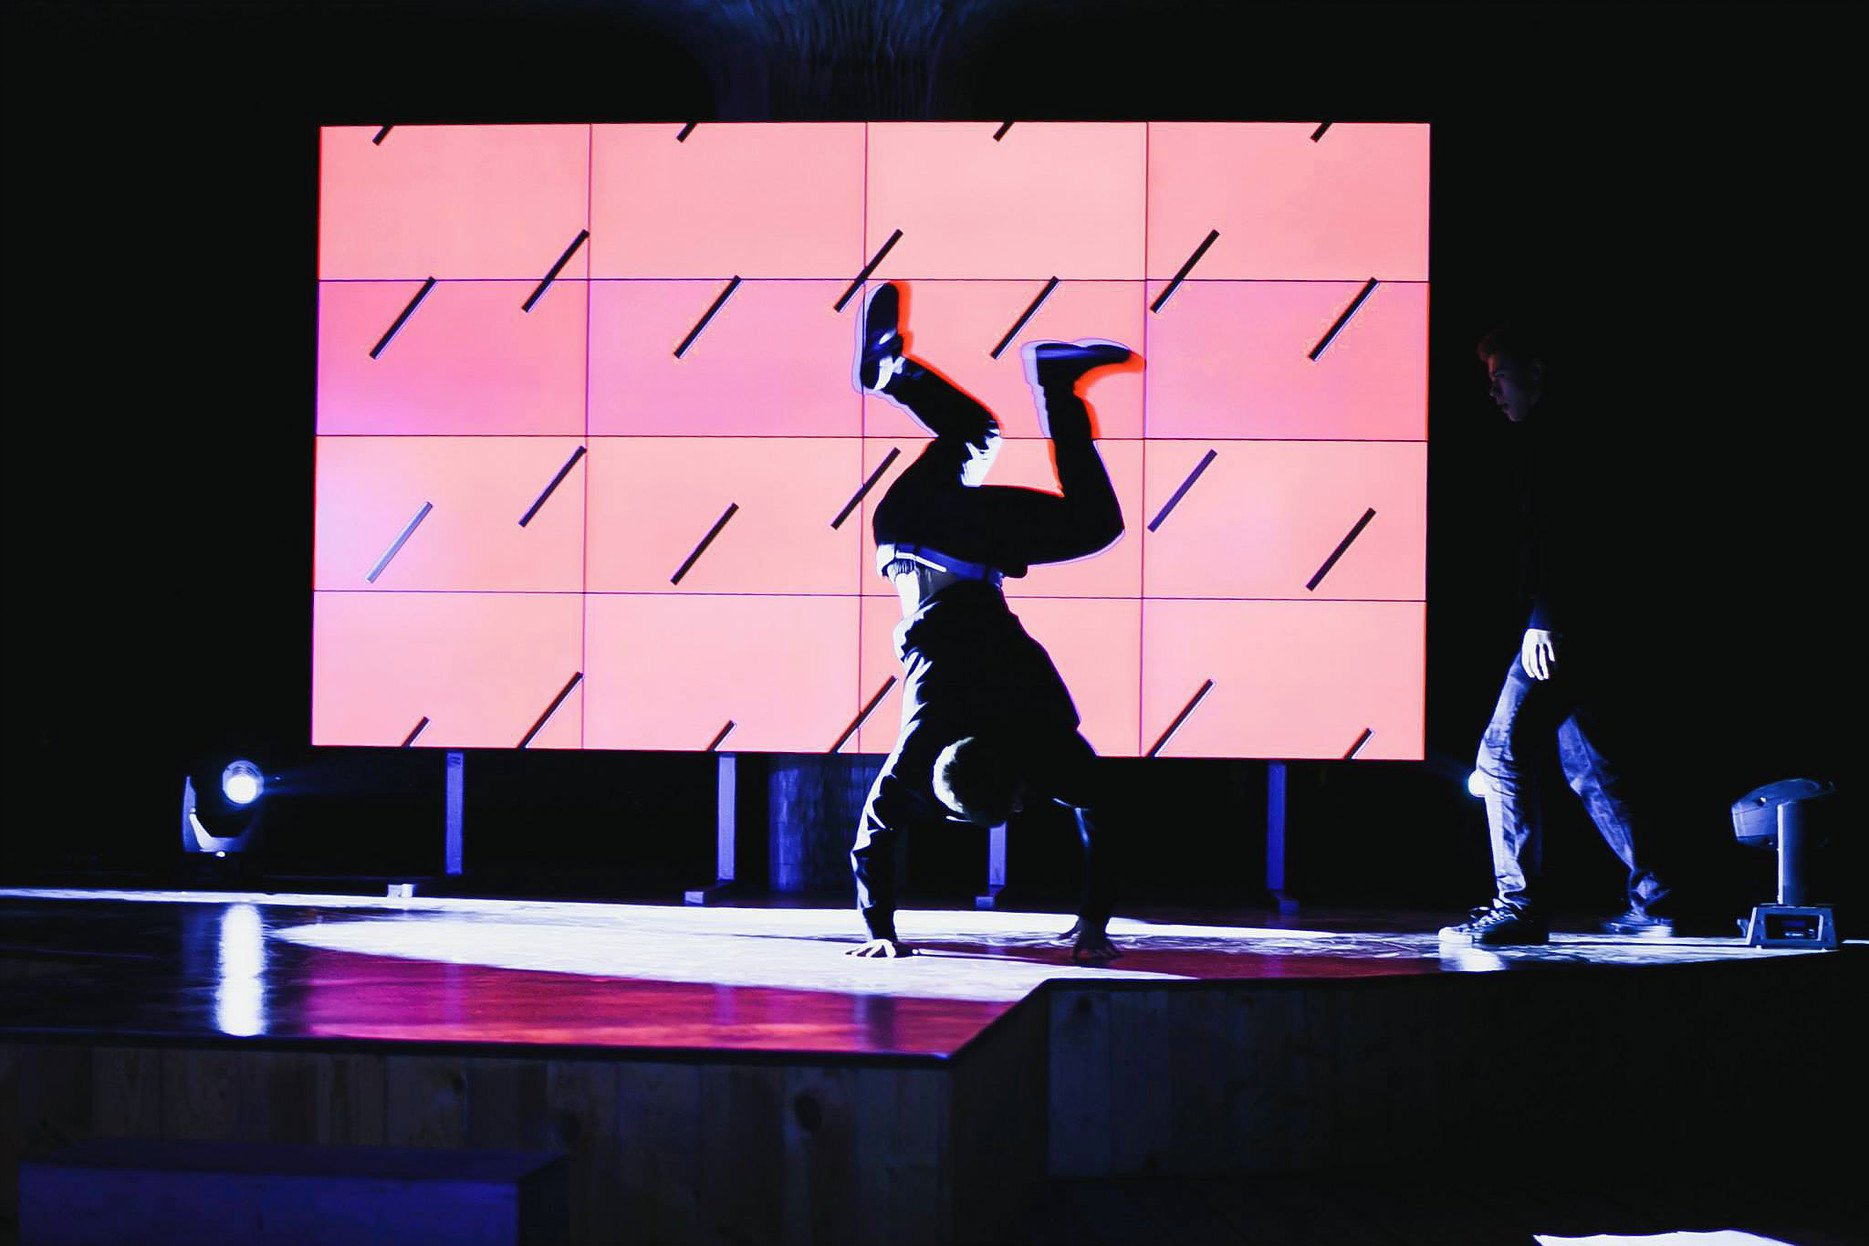 Poetry Moves performance, 2014